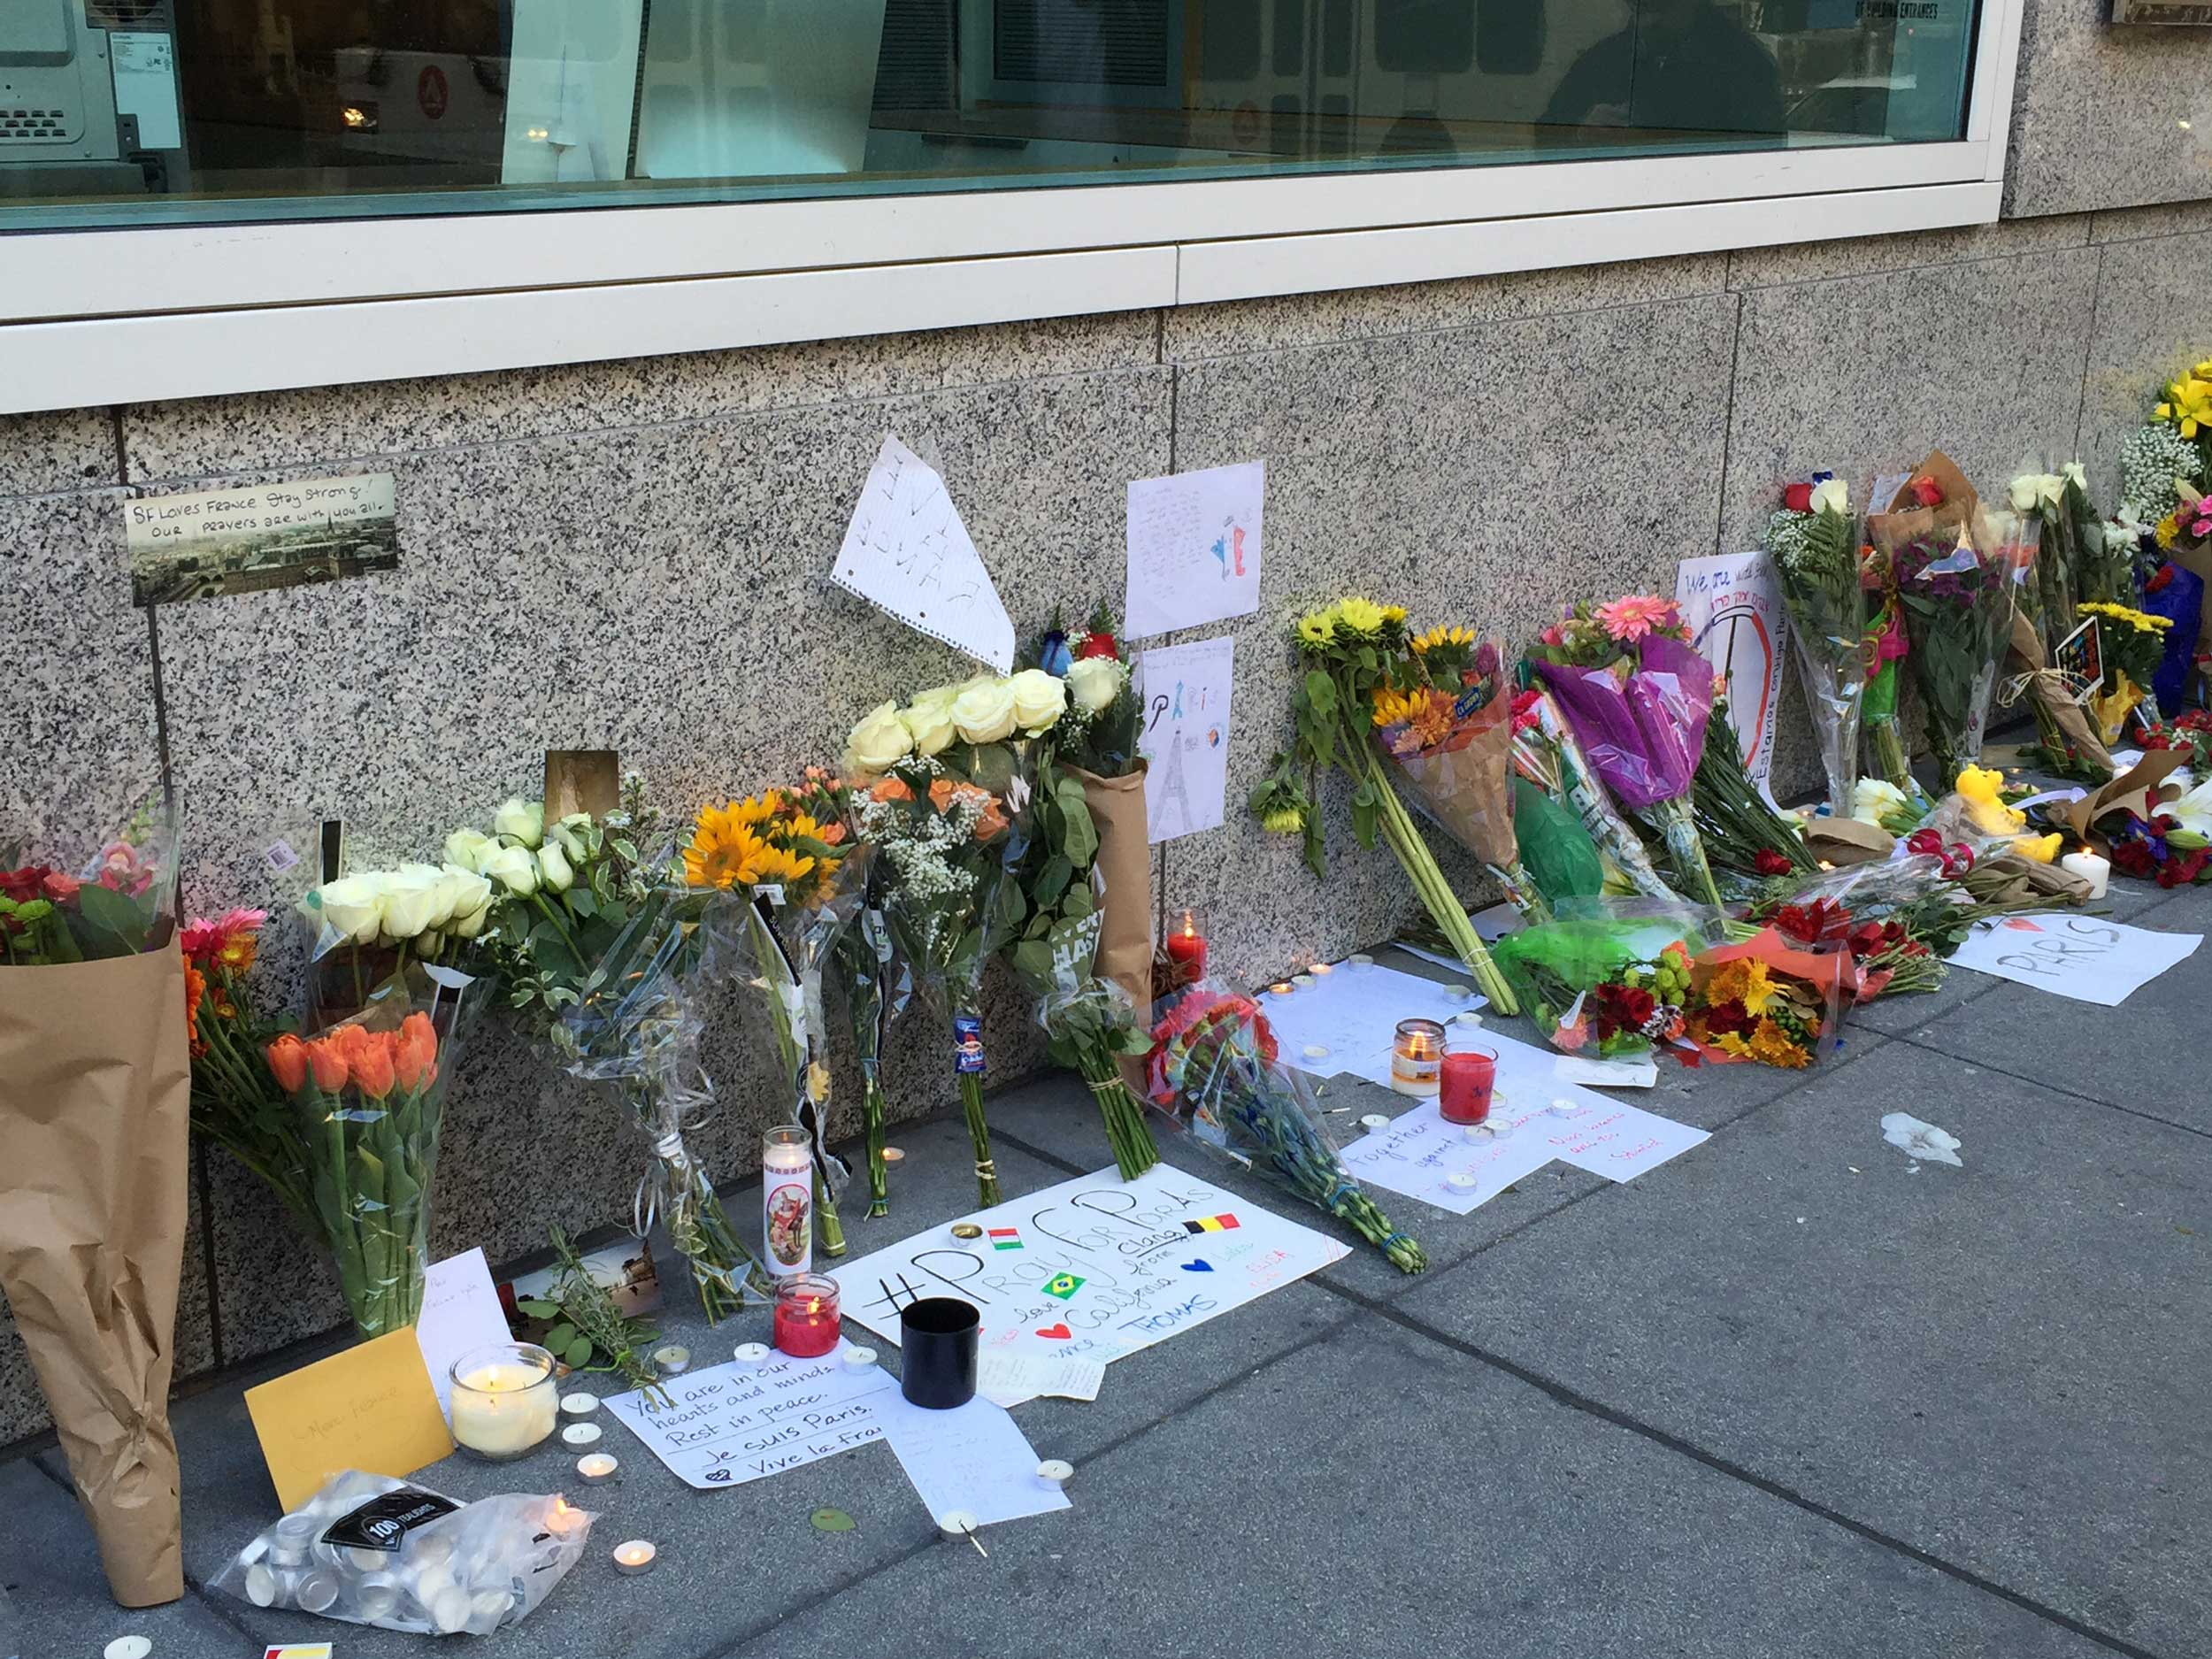 Outside of the French Consulate in San Francisco, mourners leave flowers and notes on Nov. 14, 2015, a day after terrorist attacks in Paris. (Kaitlyn Landgraf/Peninsula Press)